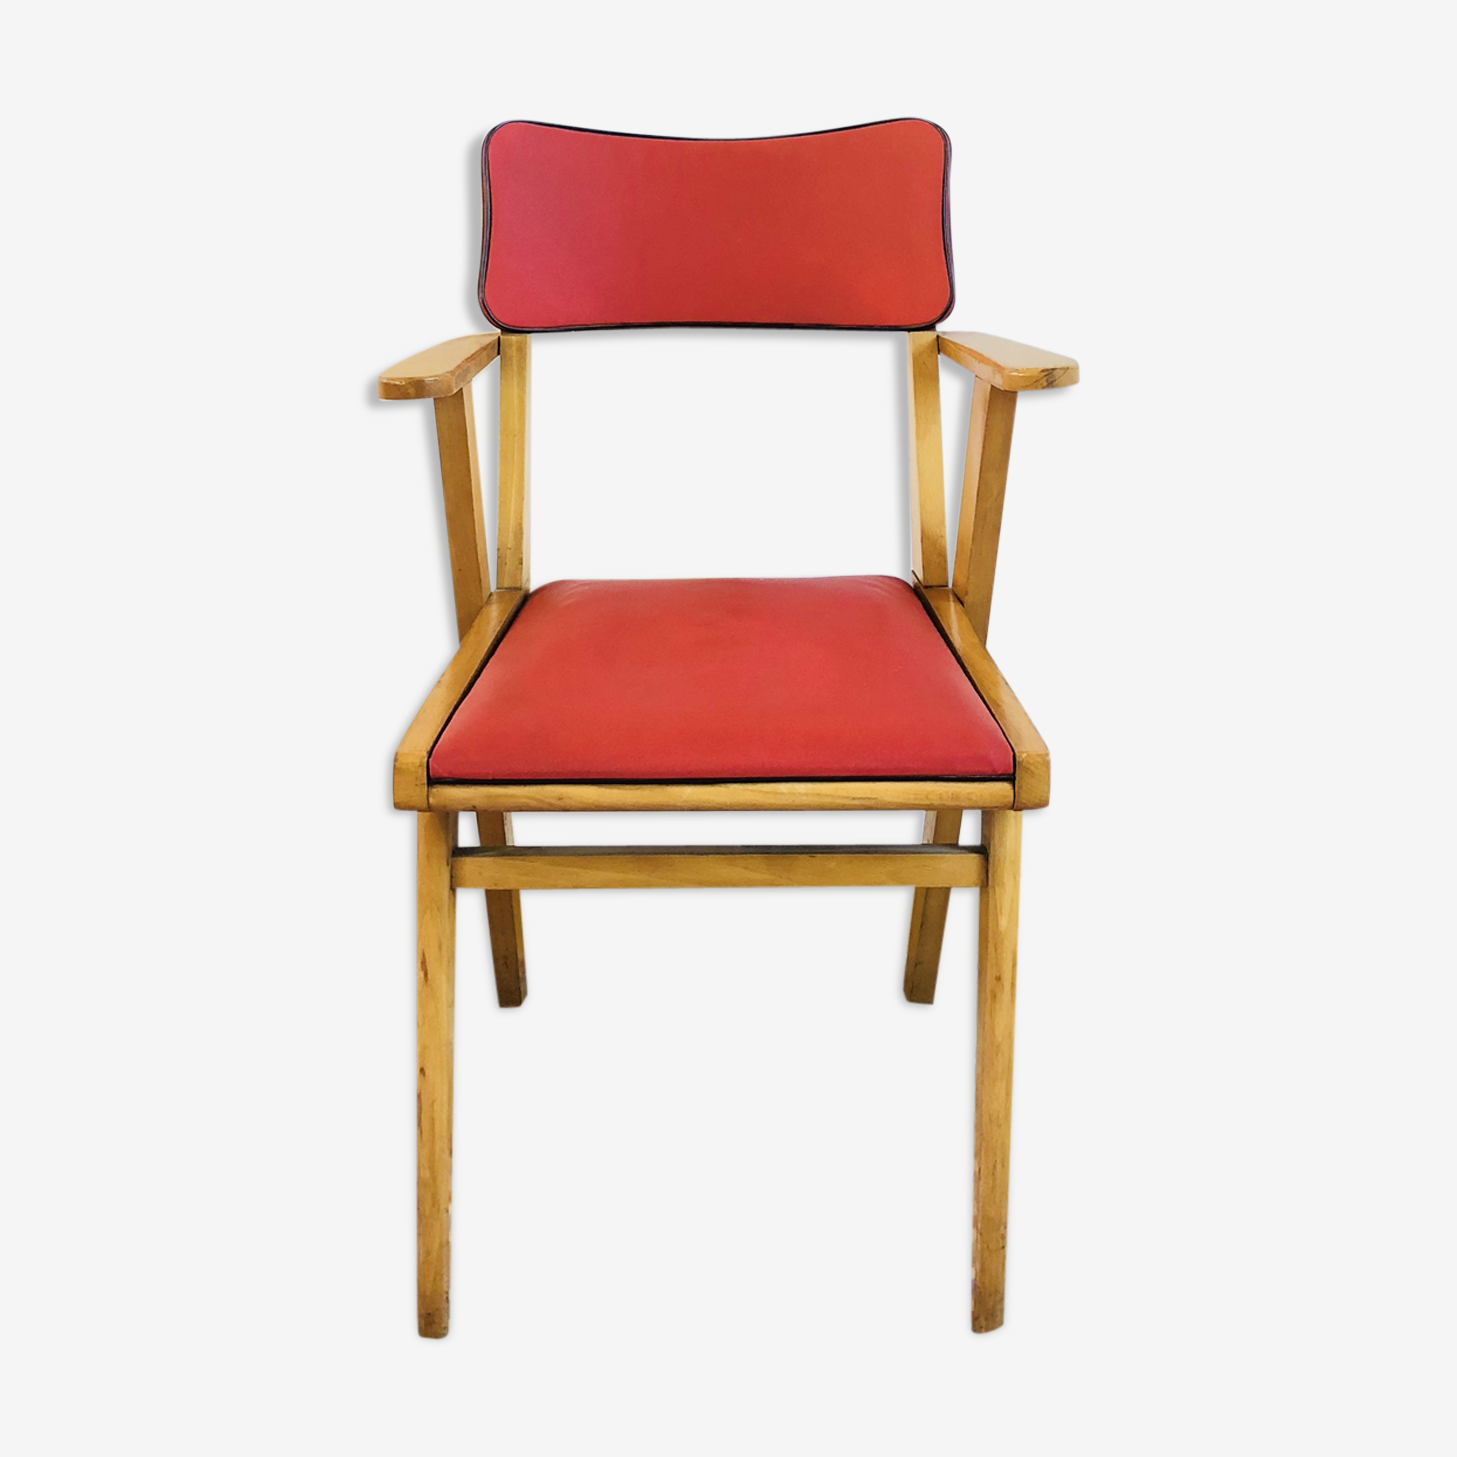 Armchair in wood and leatherette